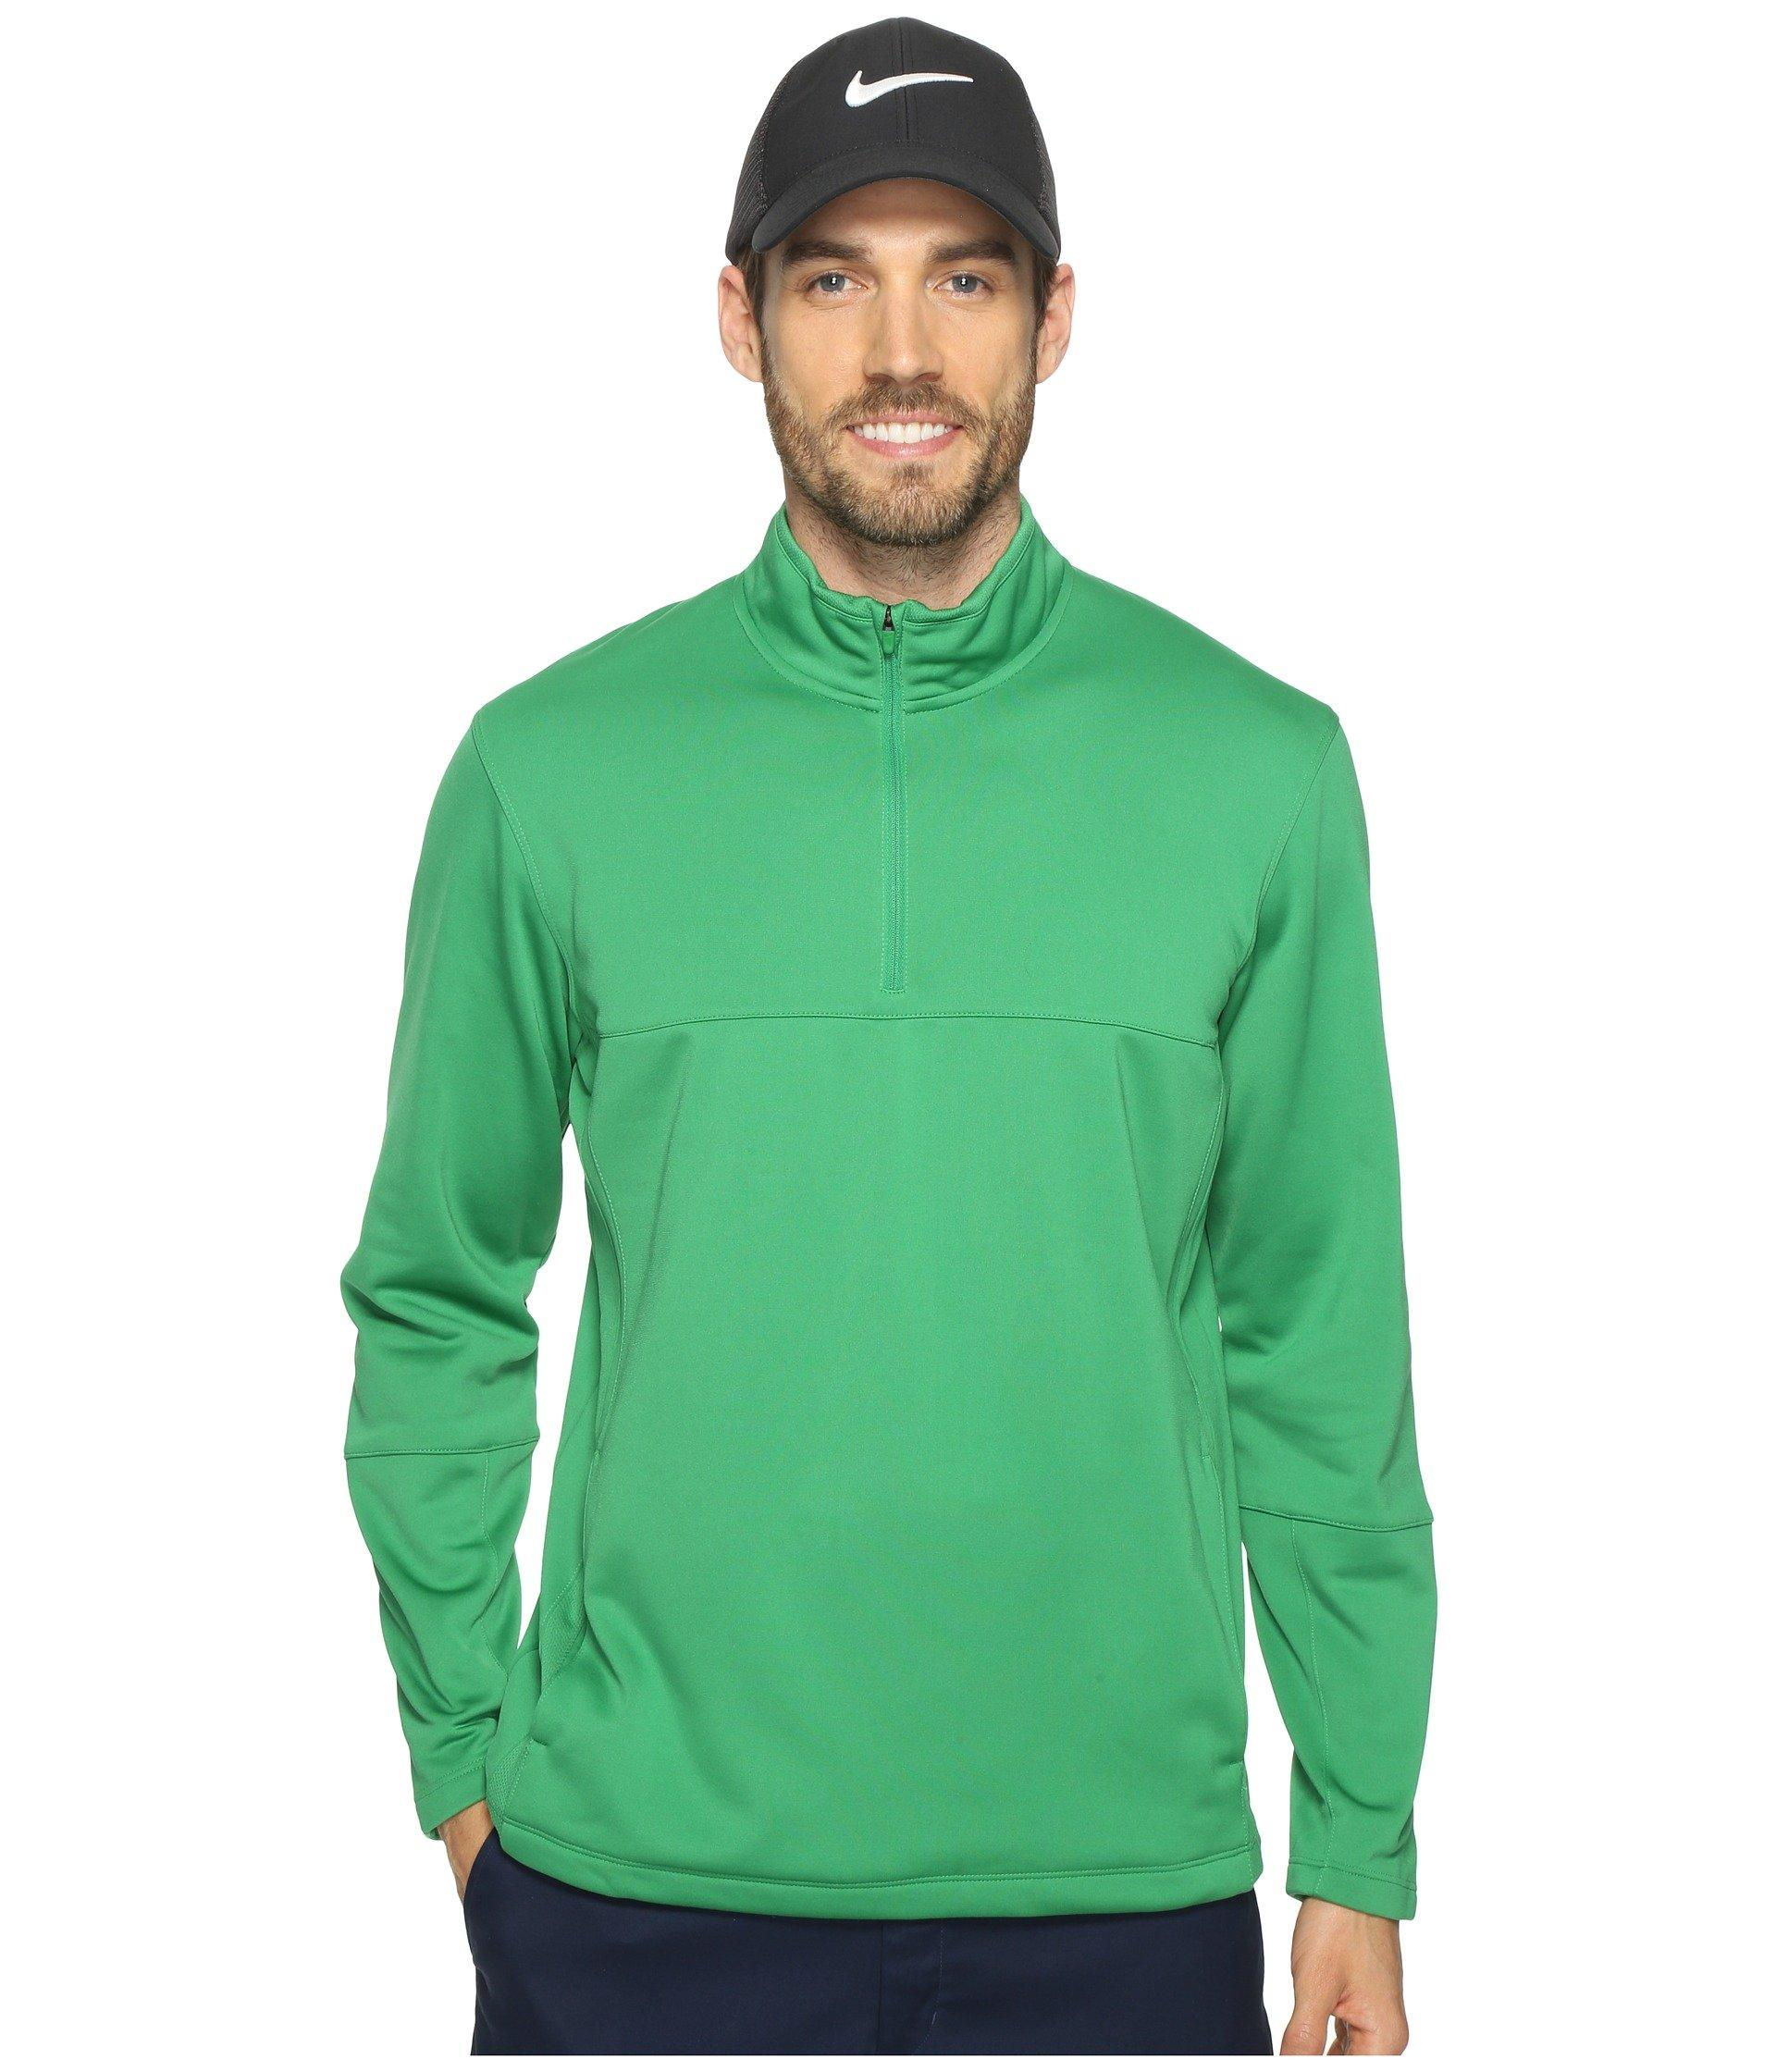 Nike Therma-fit™ Cover-up In Classic Green/classic Green/classic Green/anthracite